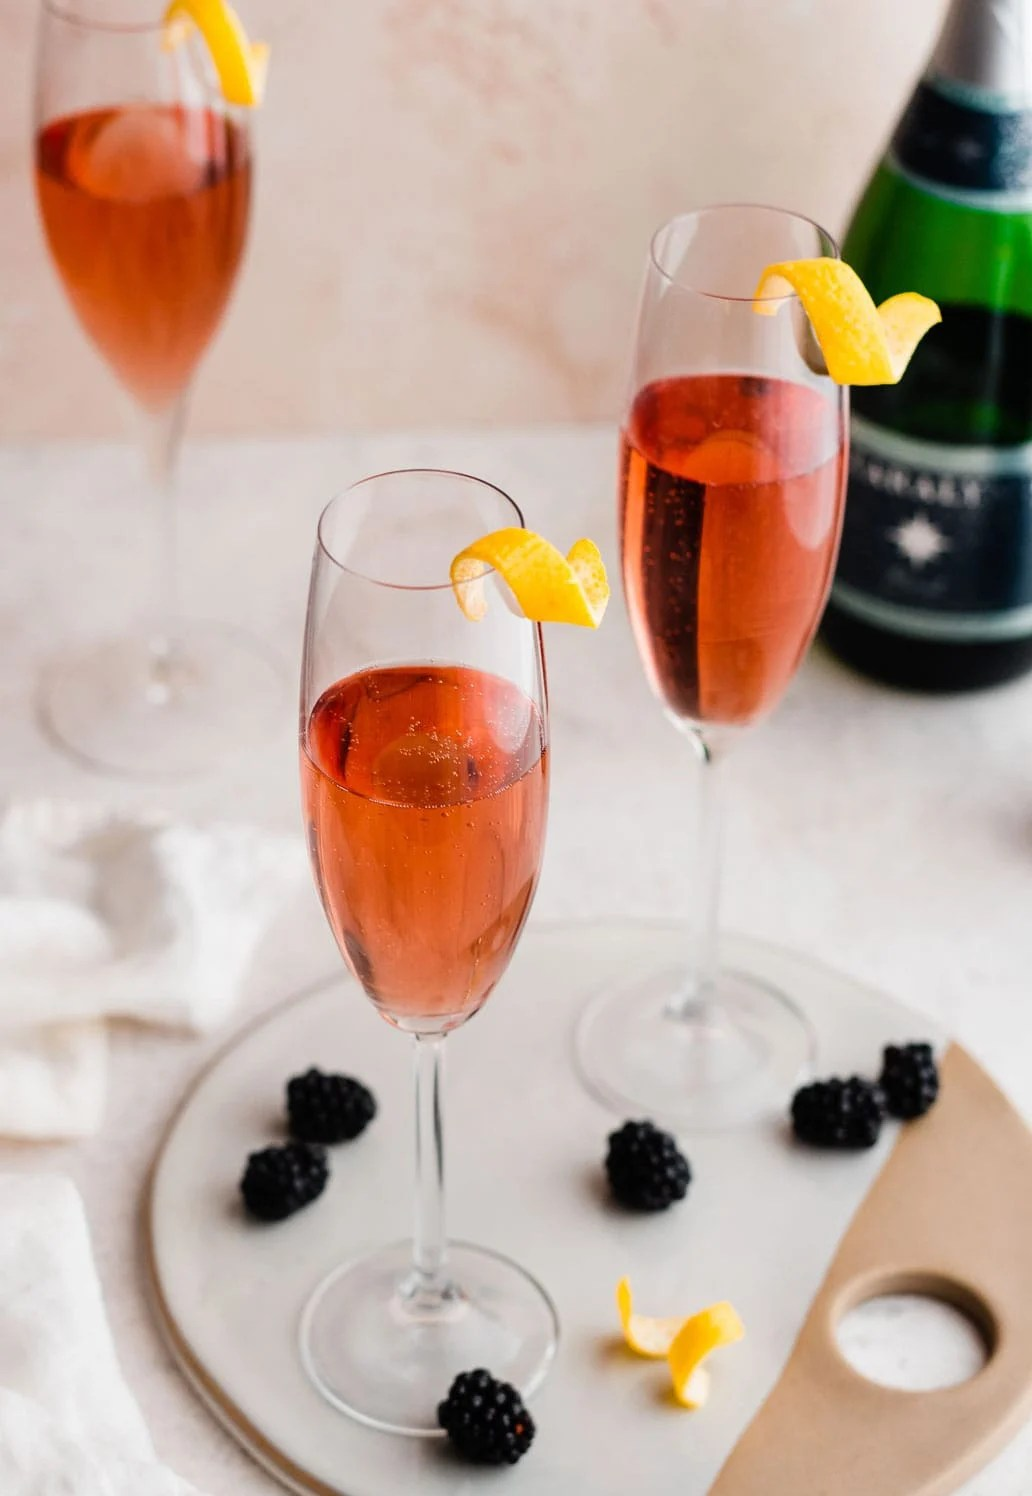 Kir Royale - 2 simple ingredients create the perfect French cocktail